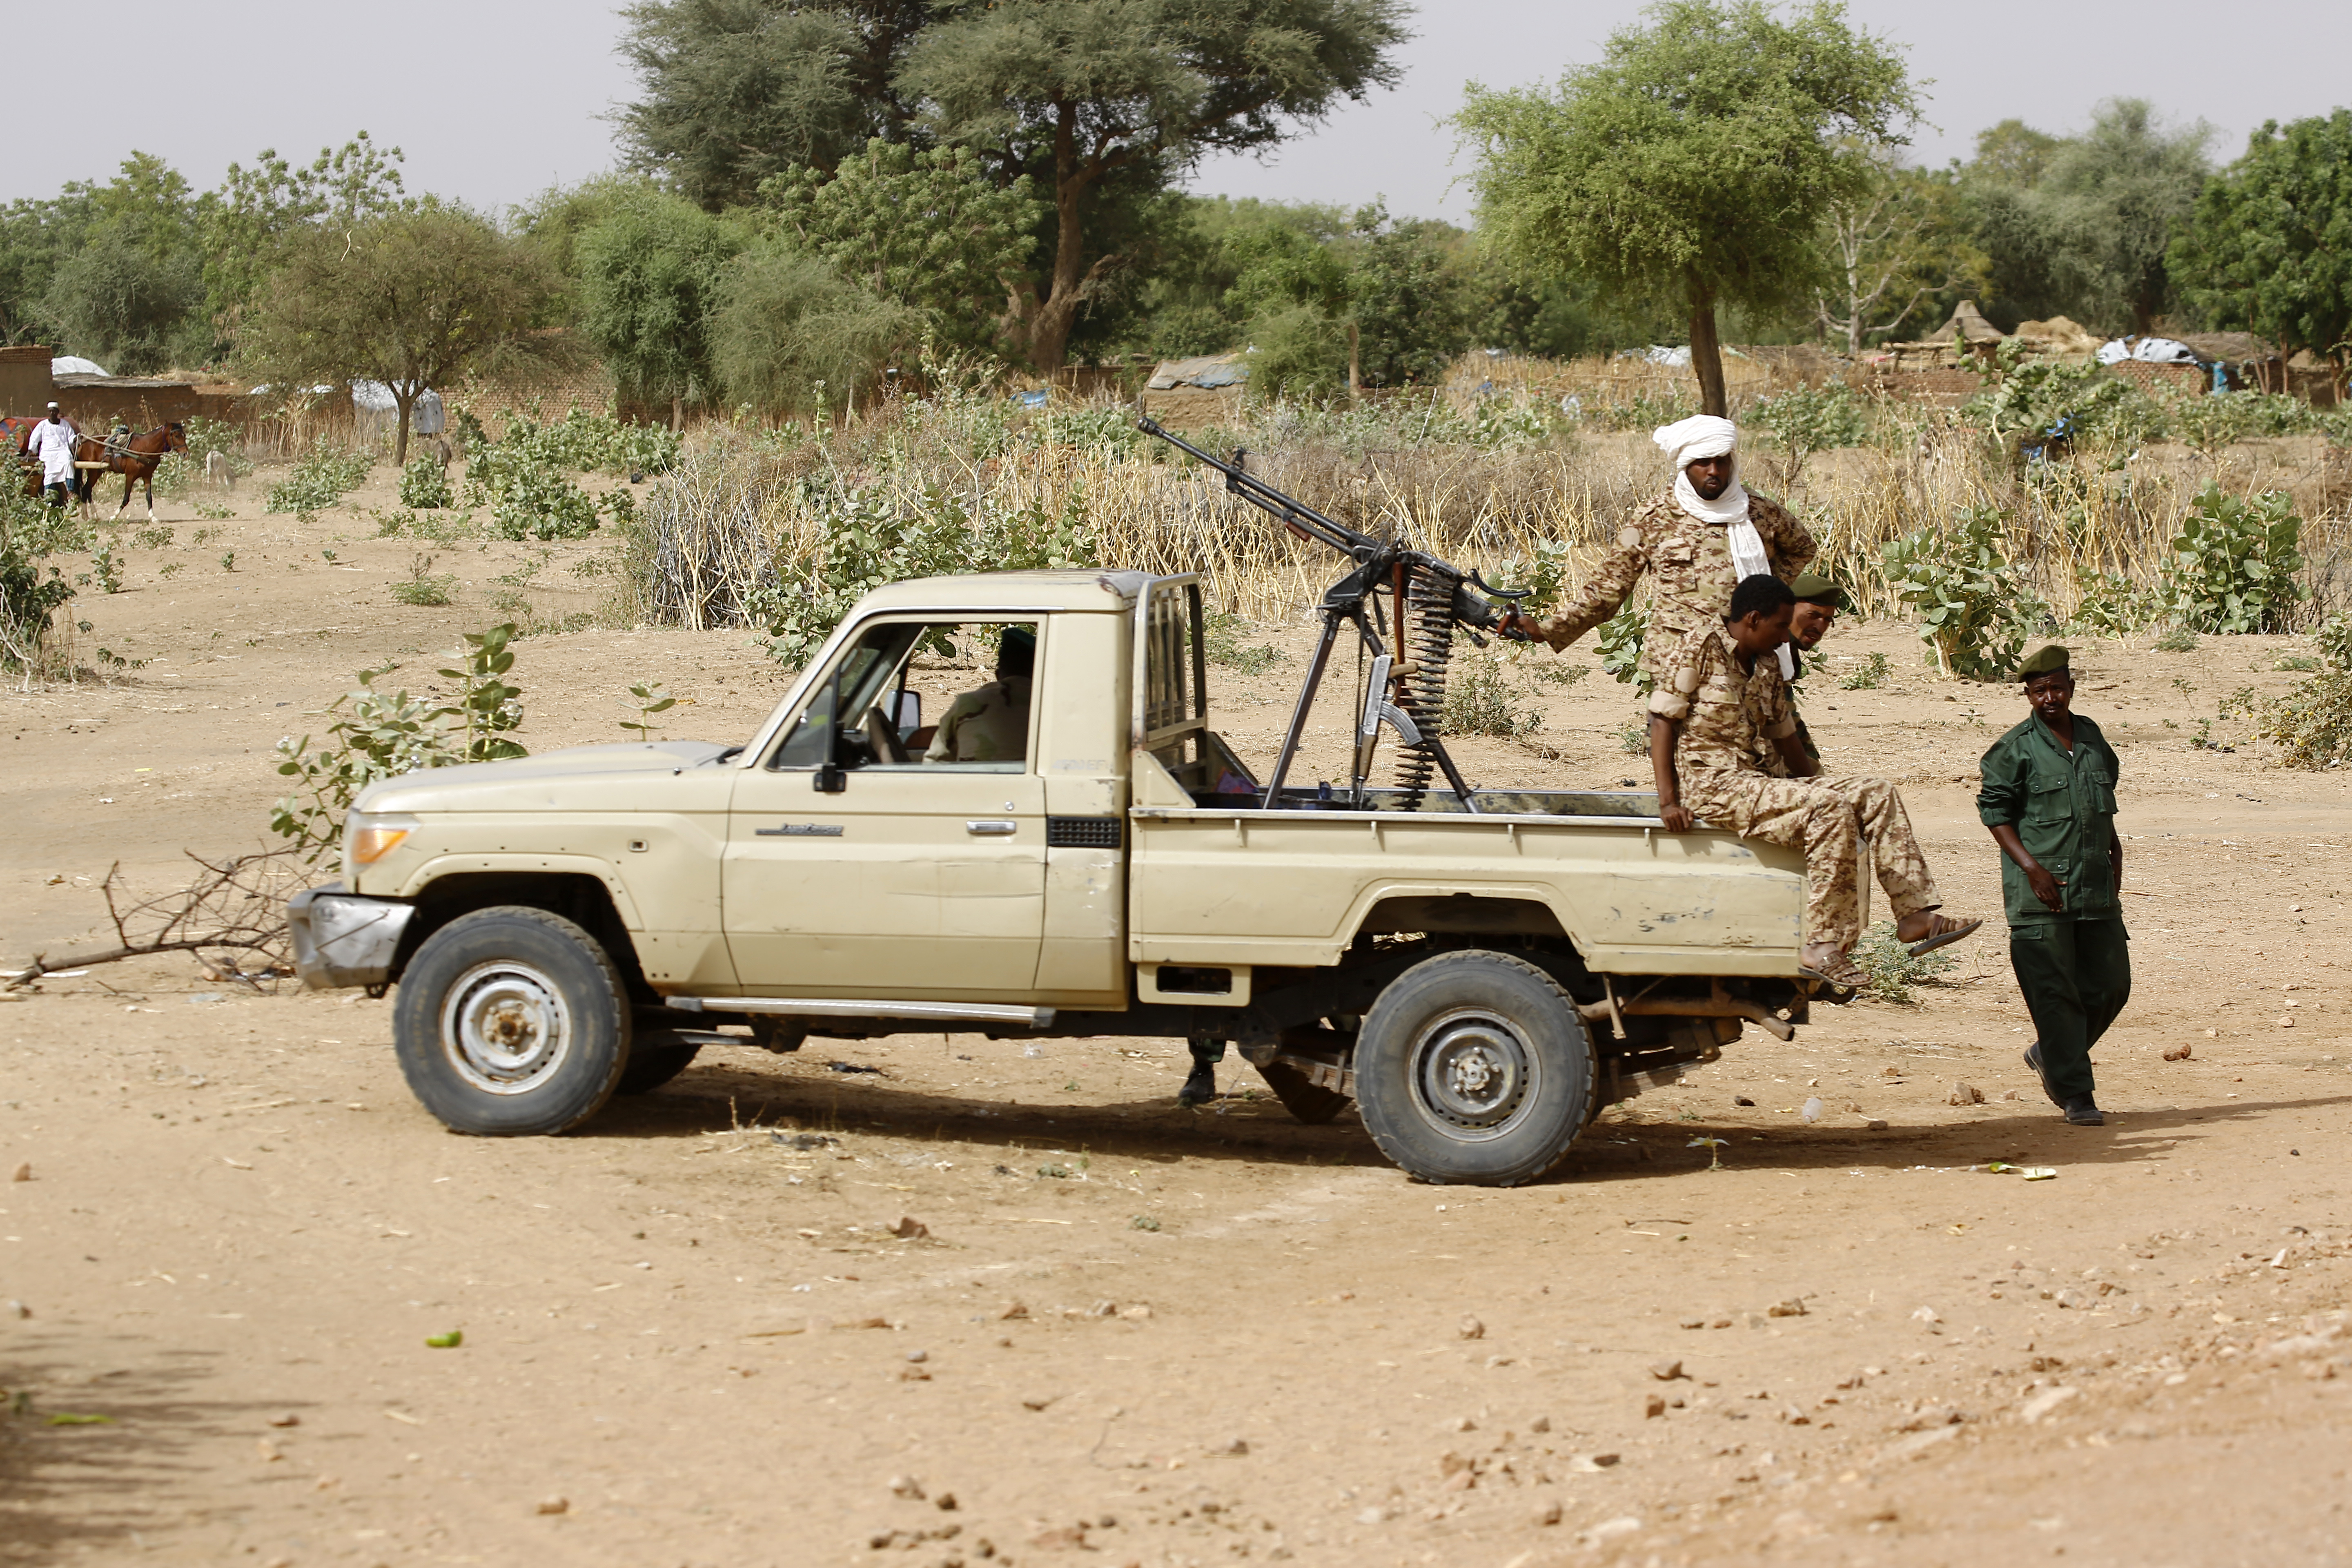 Troops deployed in Sudan's Darfur after scores killed in clashes